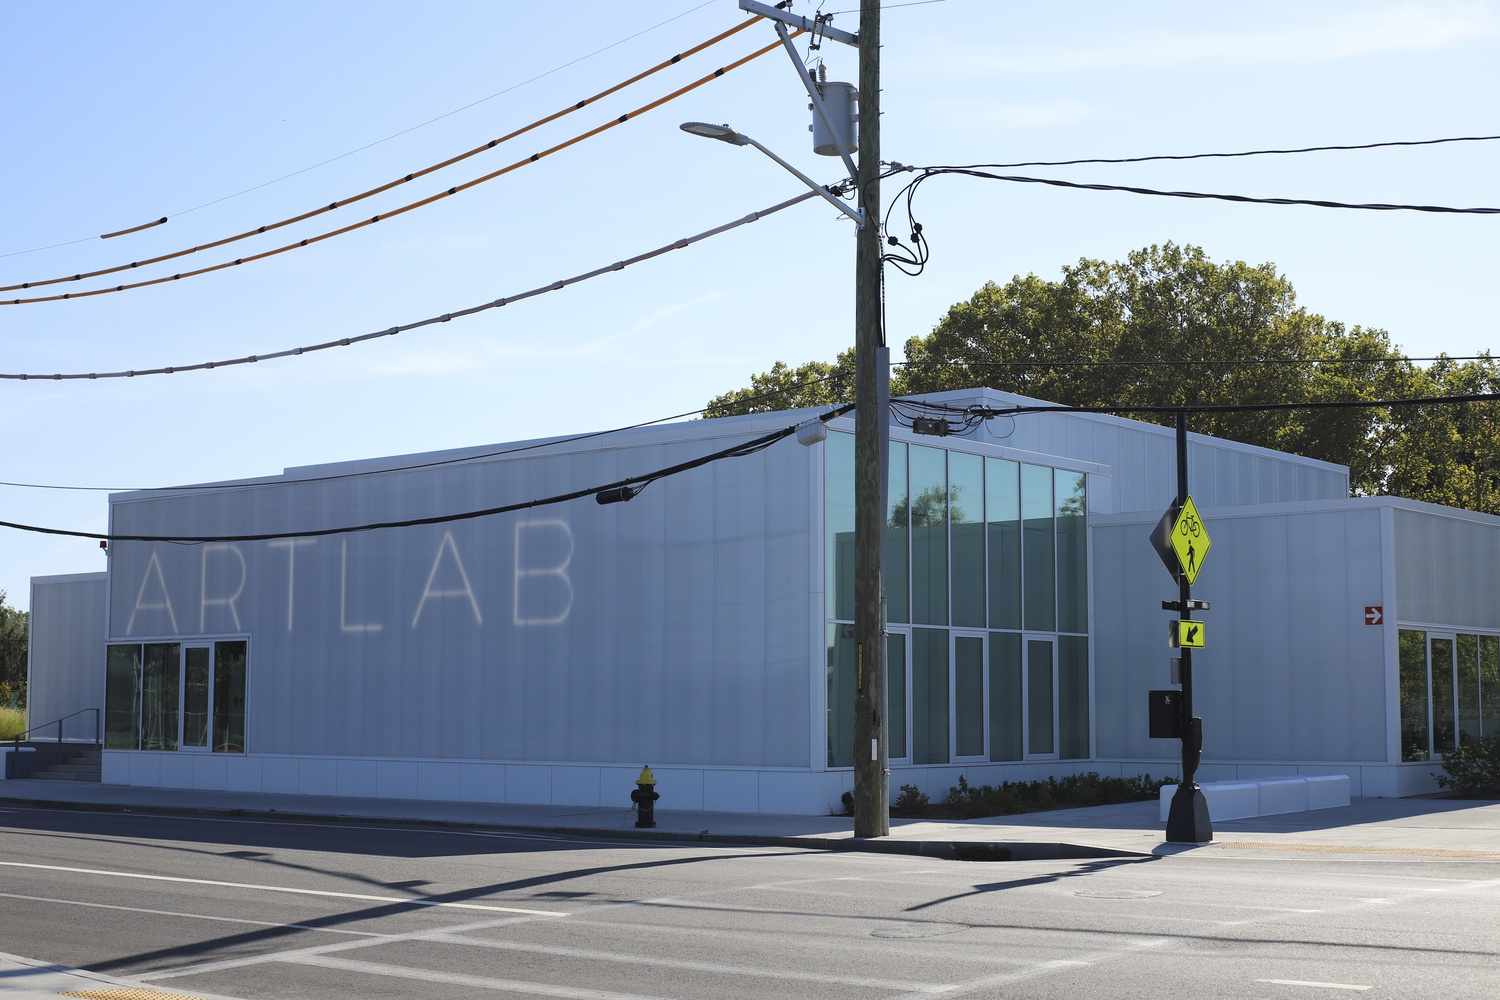 The ArtLab, which held an opening event this past Saturday, will provide a space for the arts in Boston.